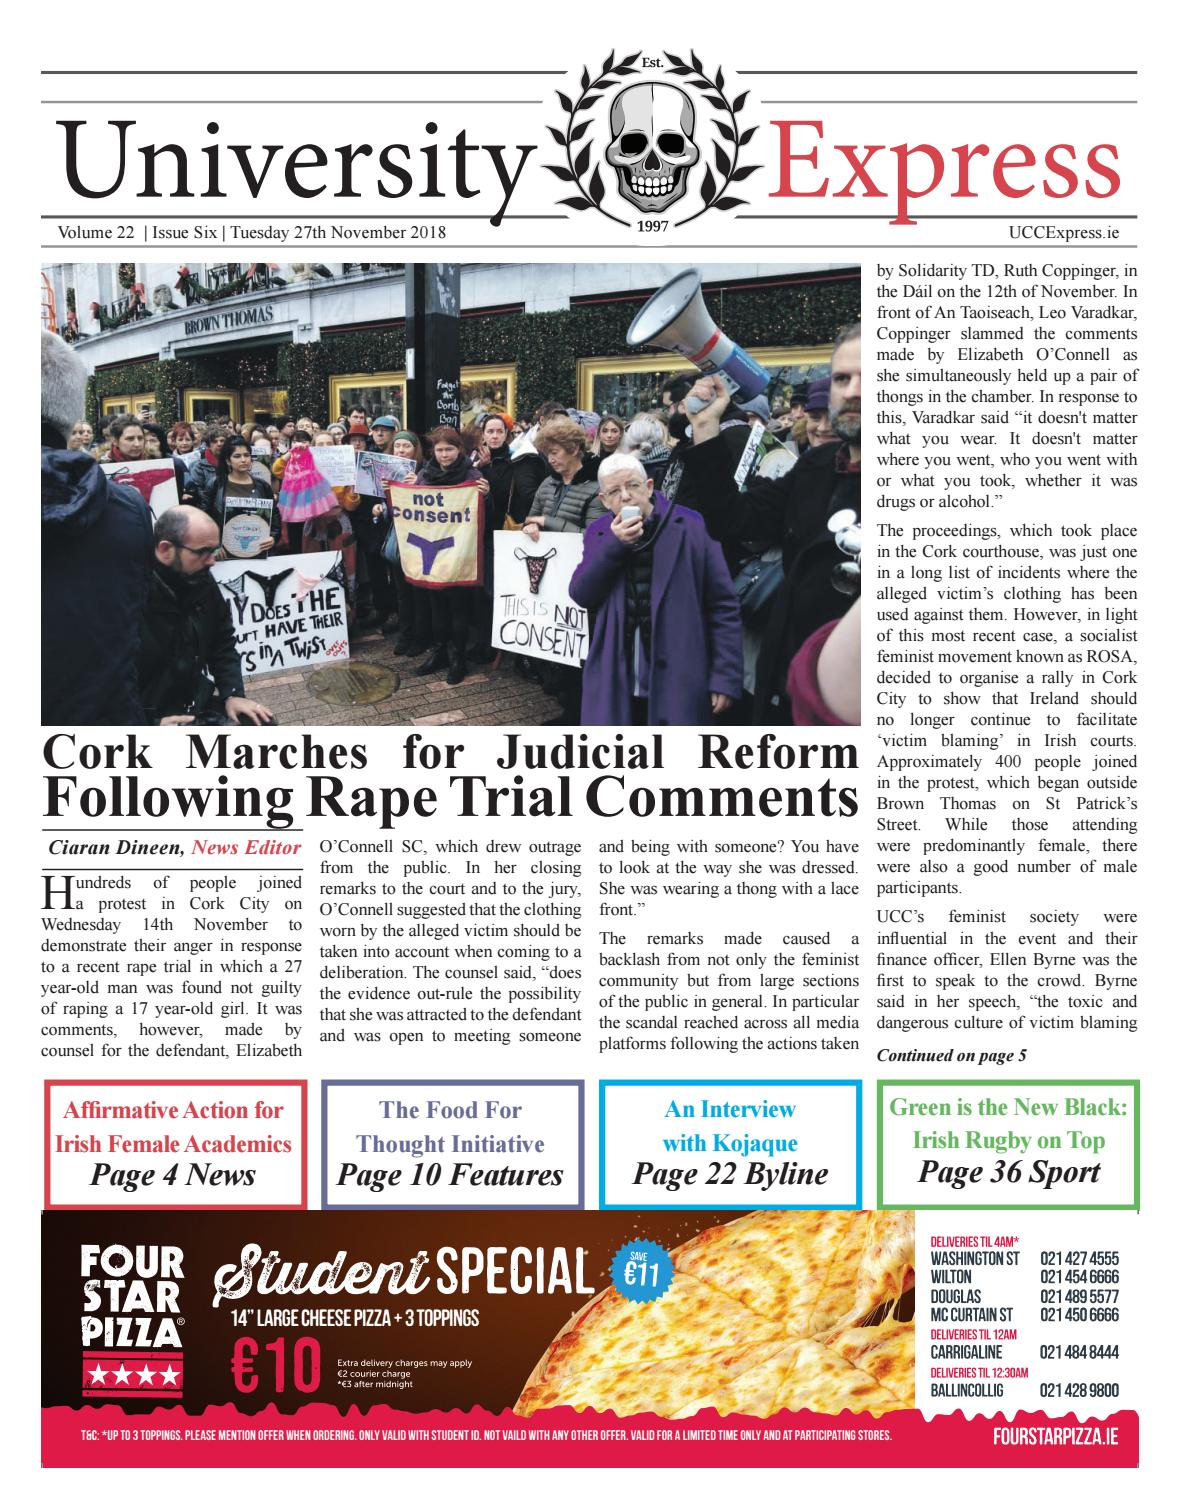 The University Express Vol  22: Issue 6 by University